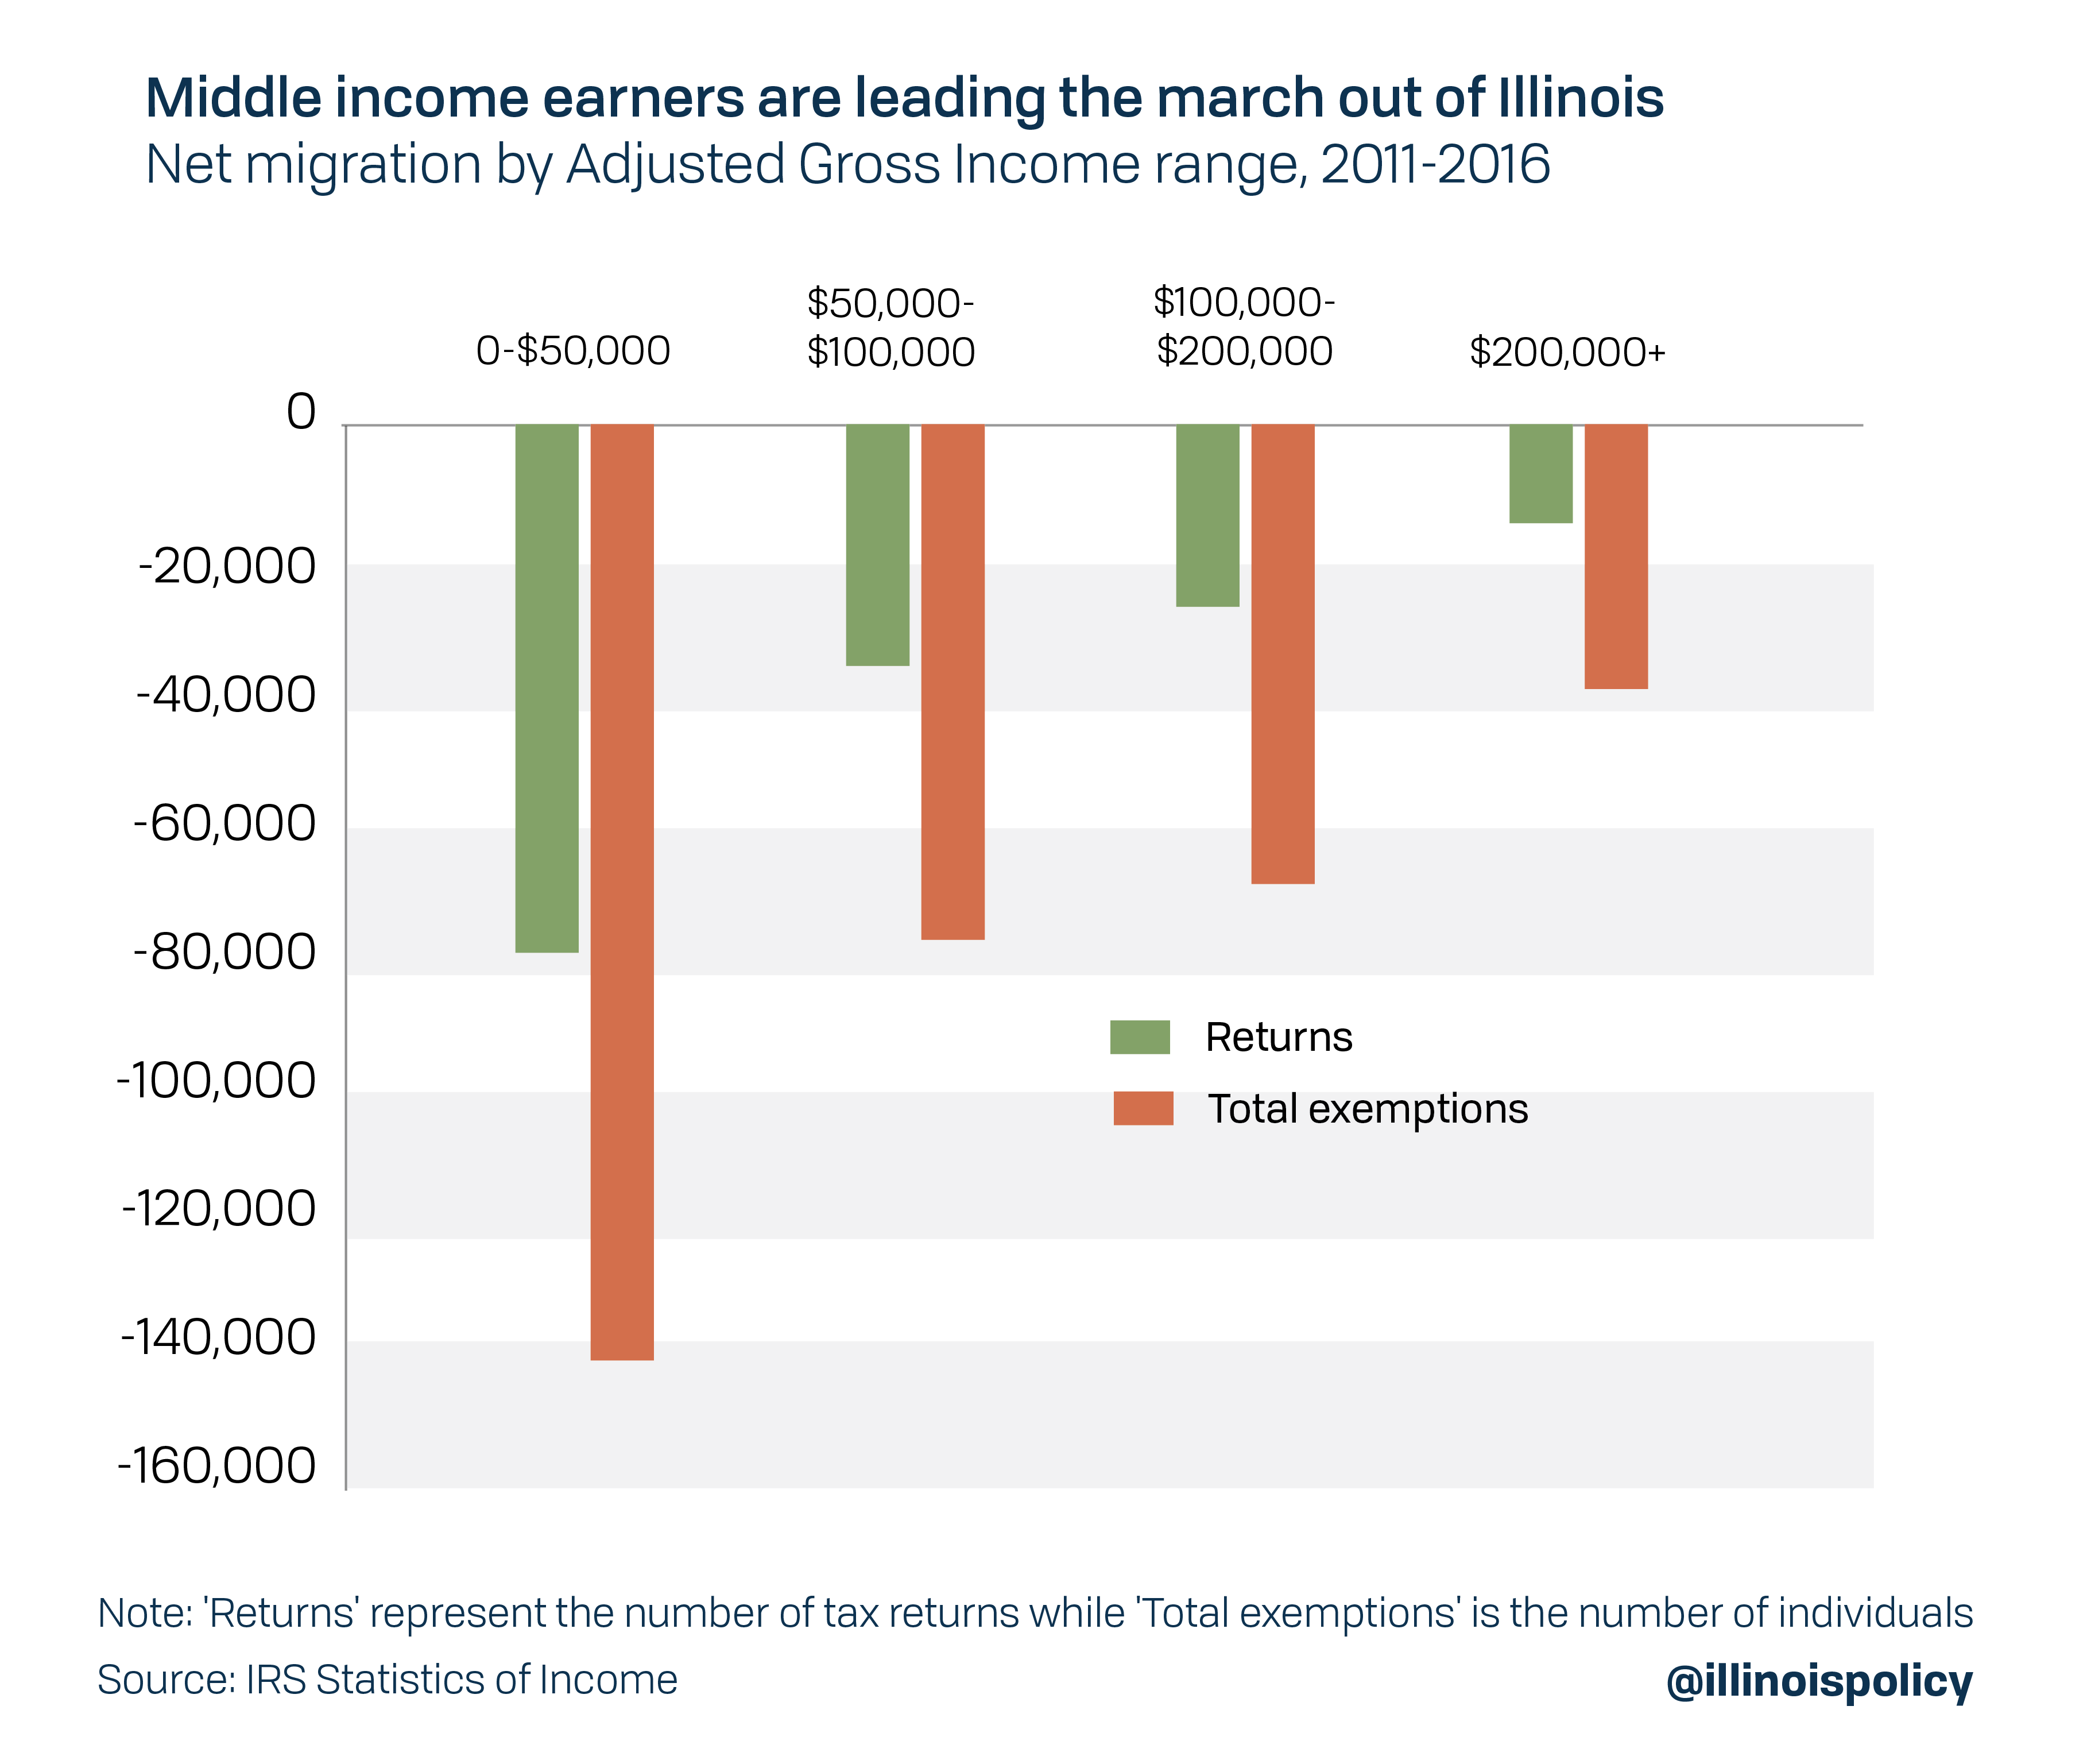 Middle income earners are leading the march out of Illinois